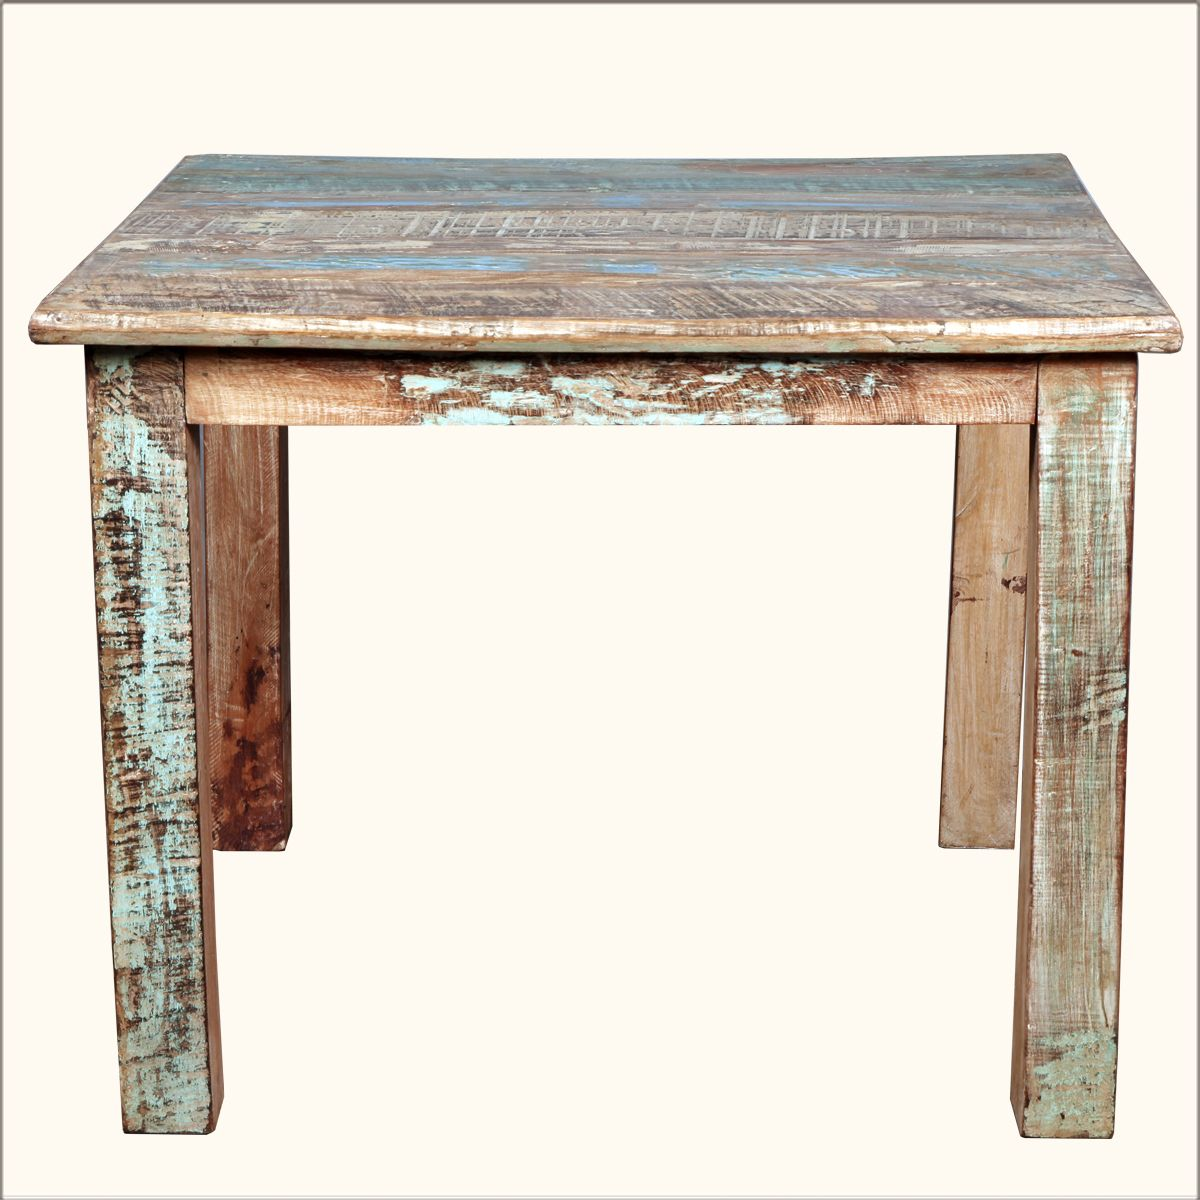 Wooden square dining table - Rustic Reclaimed Wood Distressed 40 Square Kitchen Dining Table Furniture